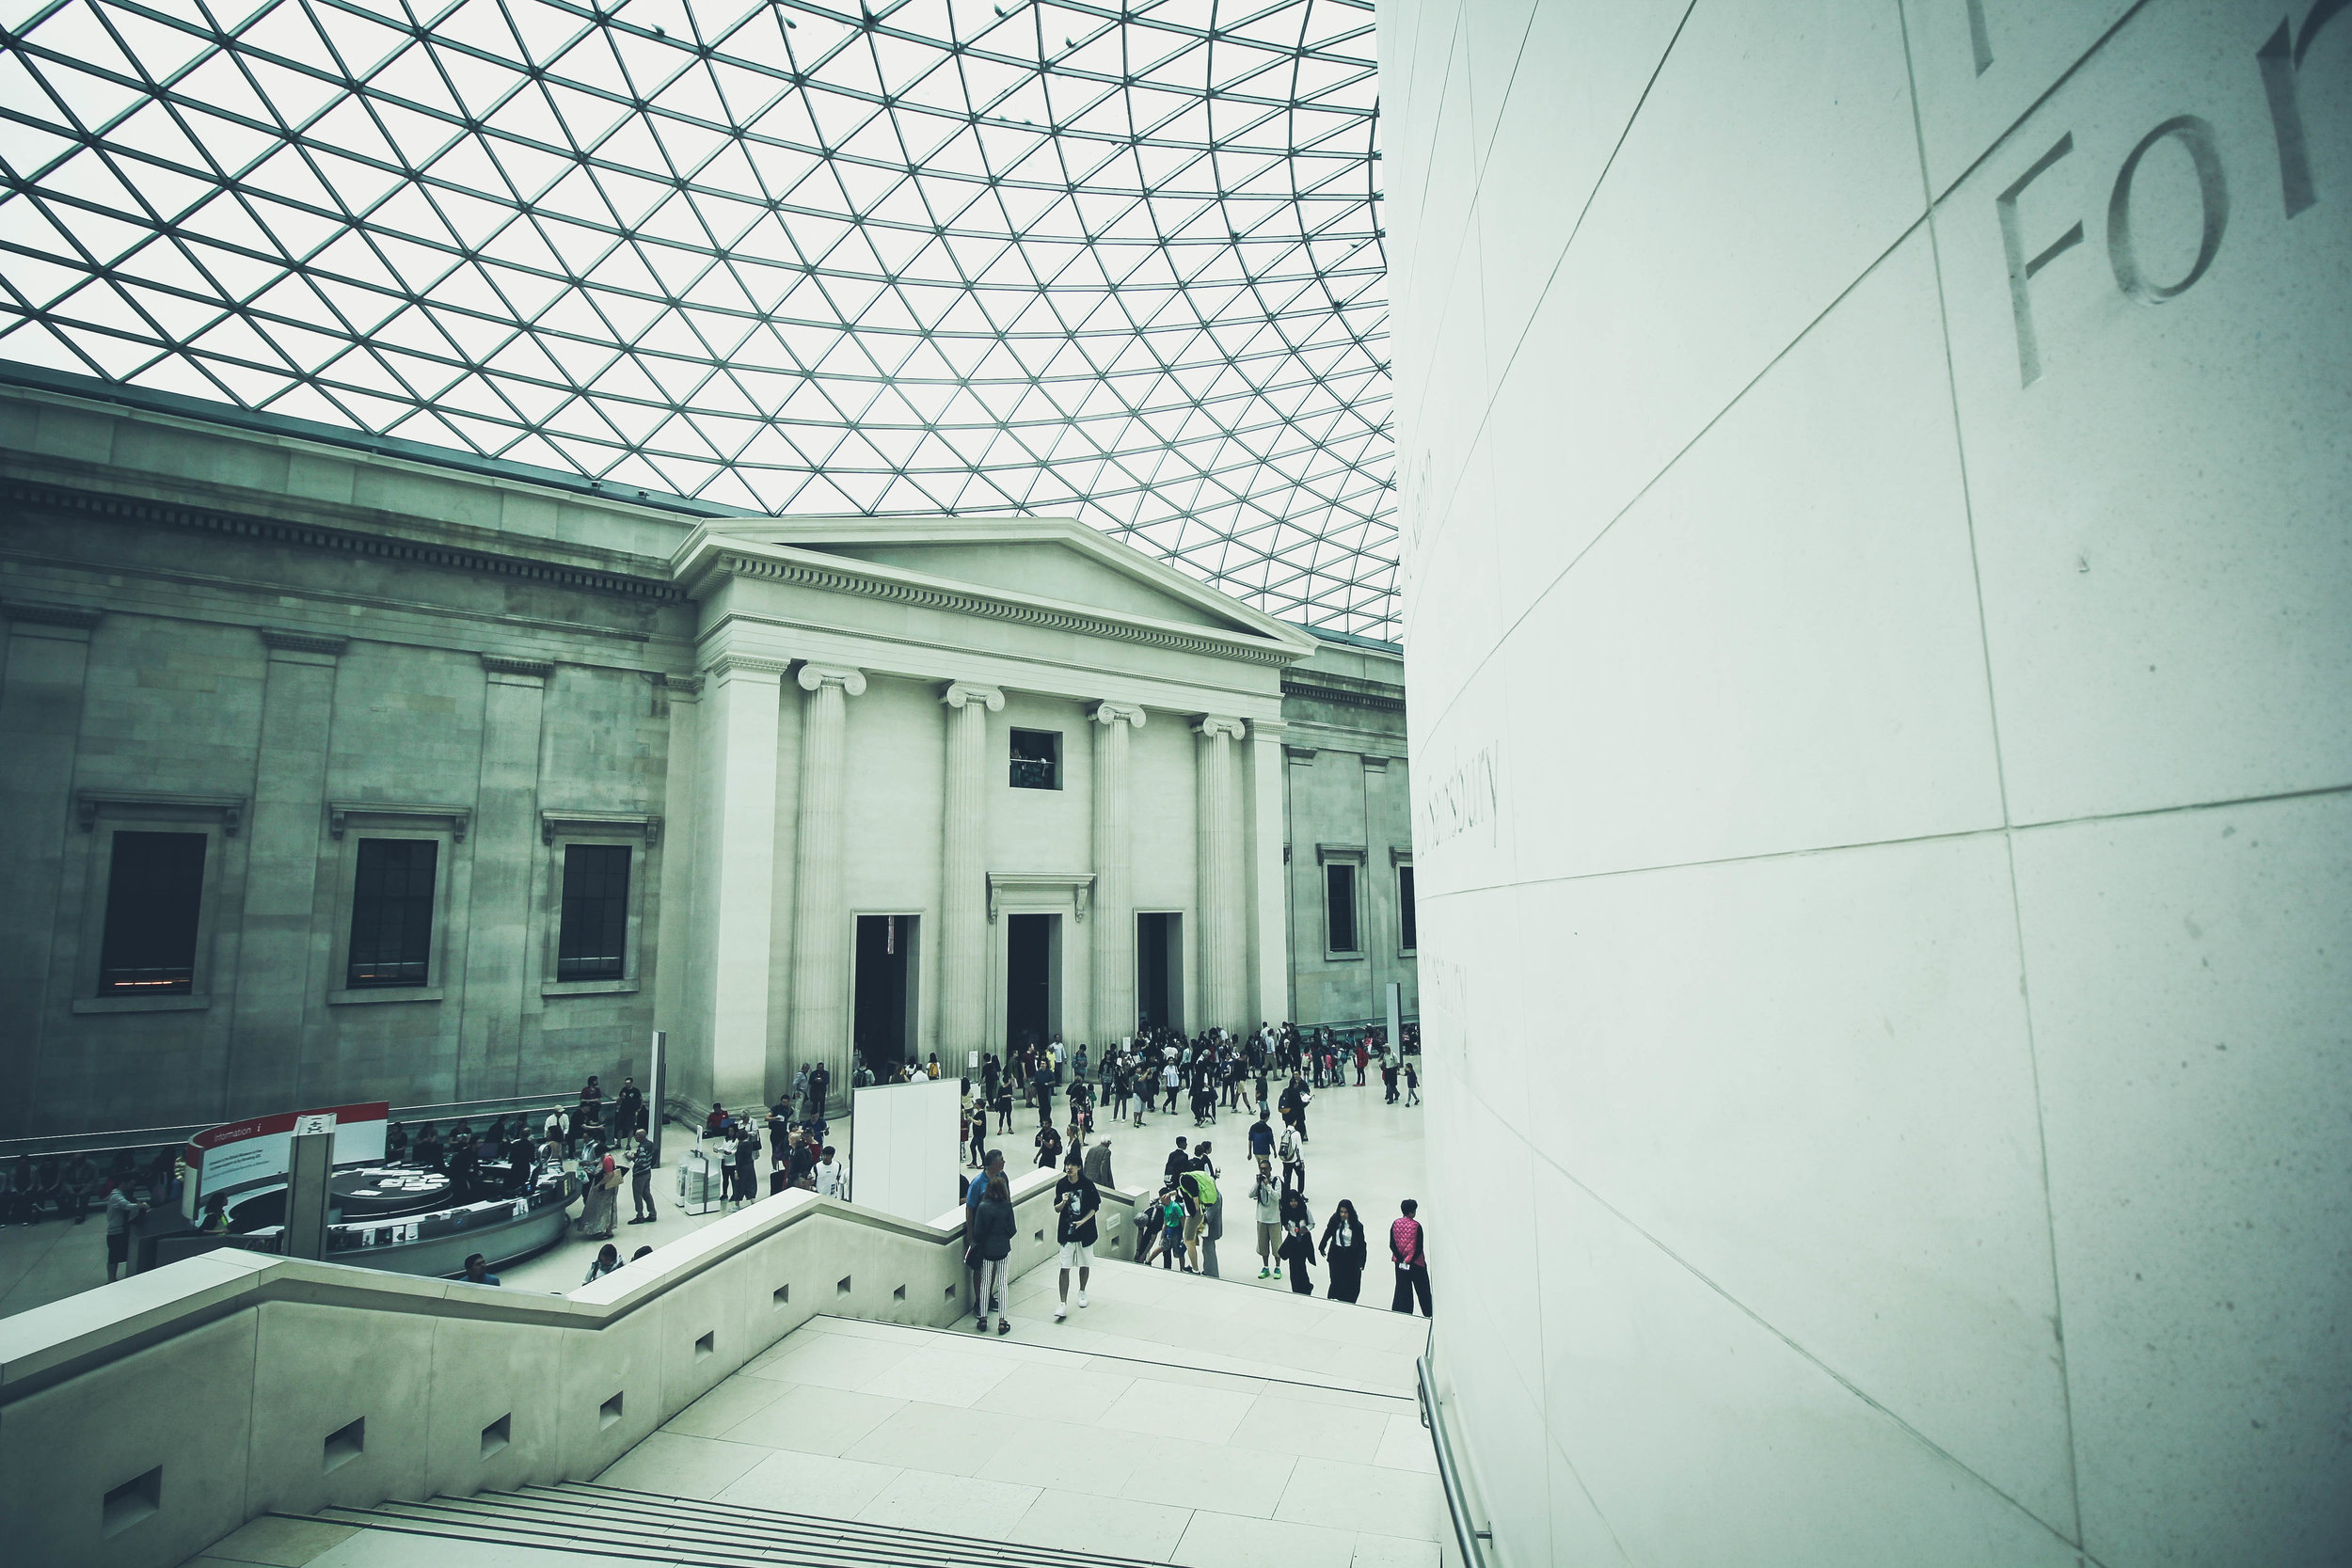 Managing global museum assets through a multi-layered IT system and digital asset management platform